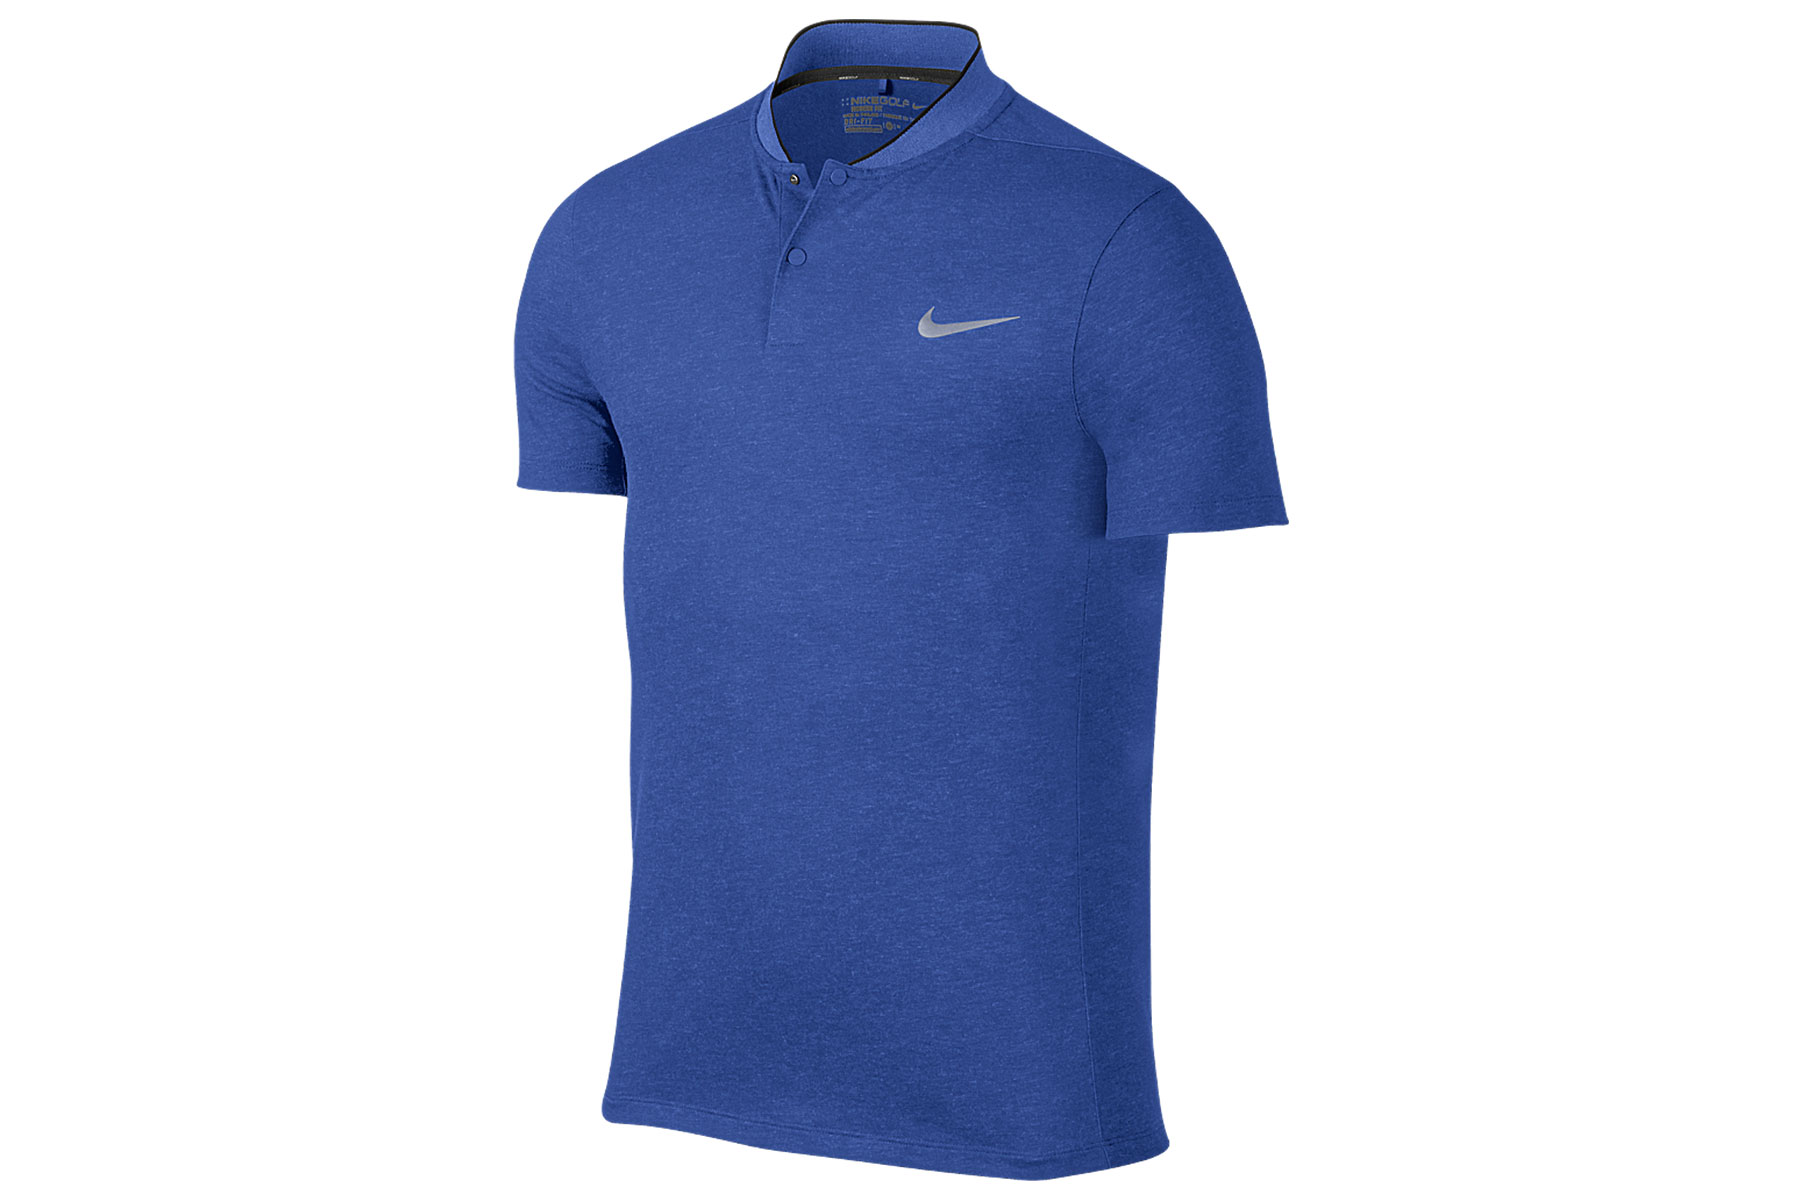 Nike Golf Momentum Fly Dri Fit Wool Polo Shirt Online Golf